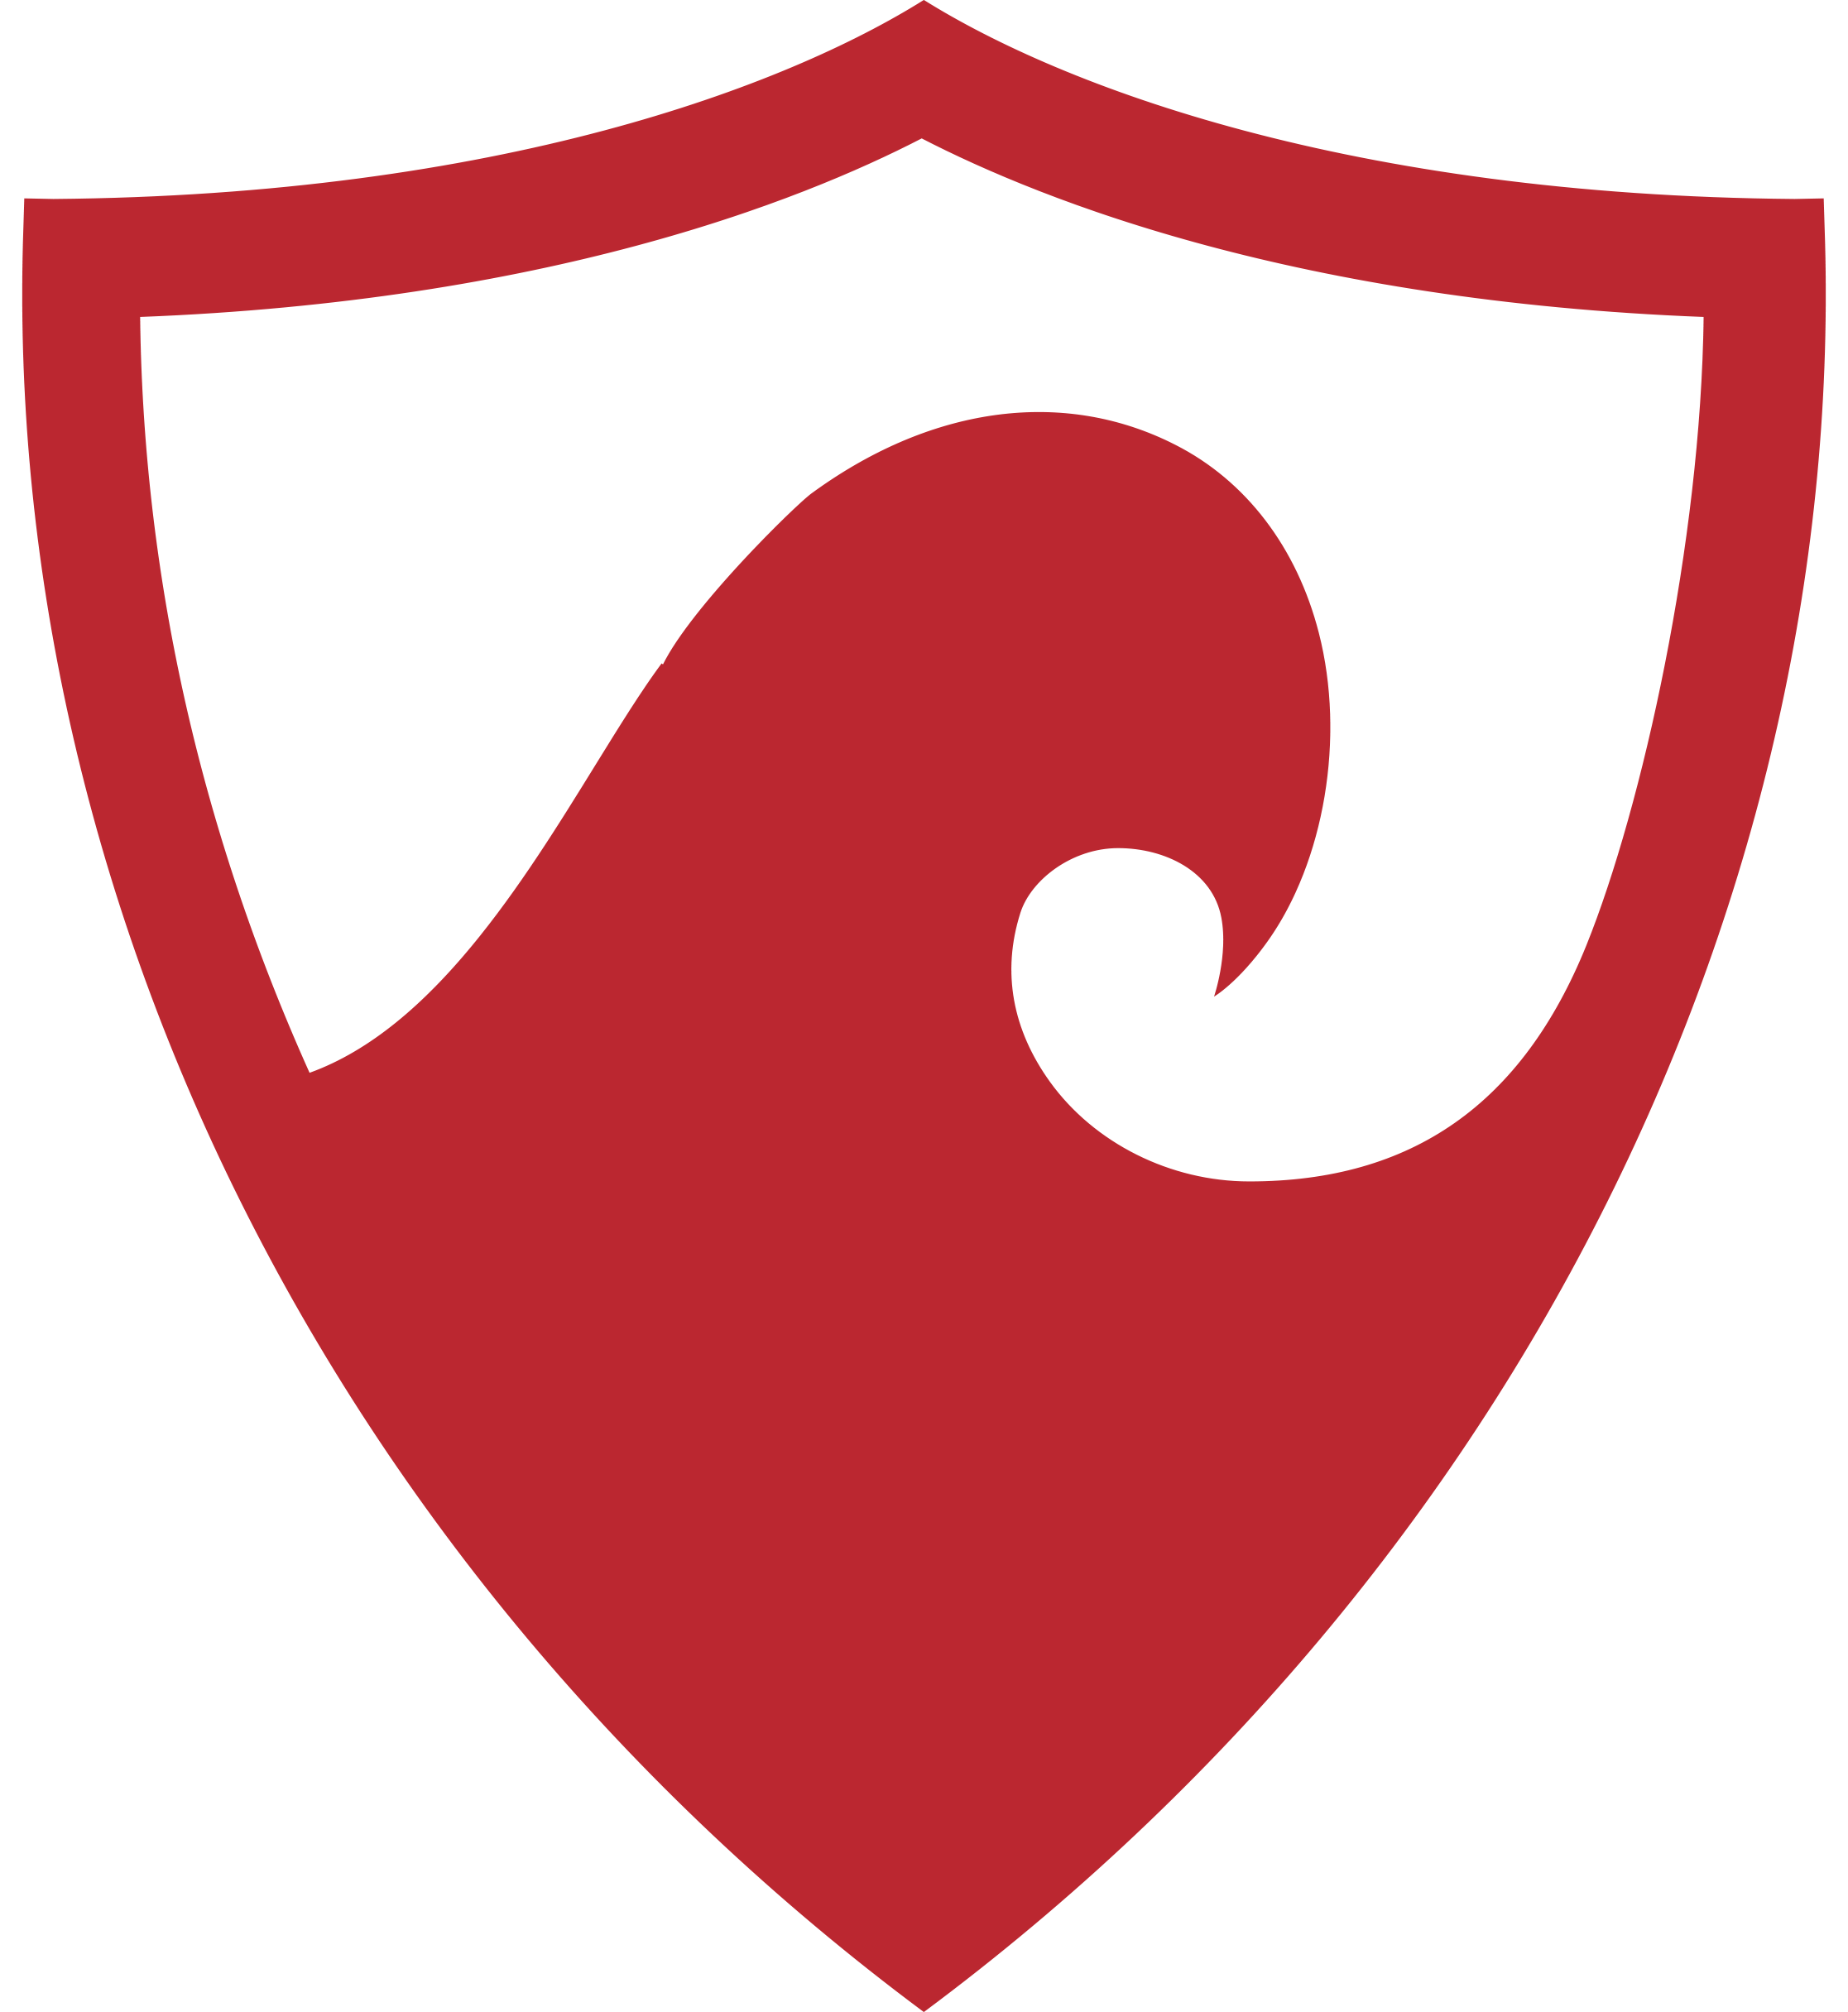 000161-20200215124813-dommelsch-logo-wapen-rood.png